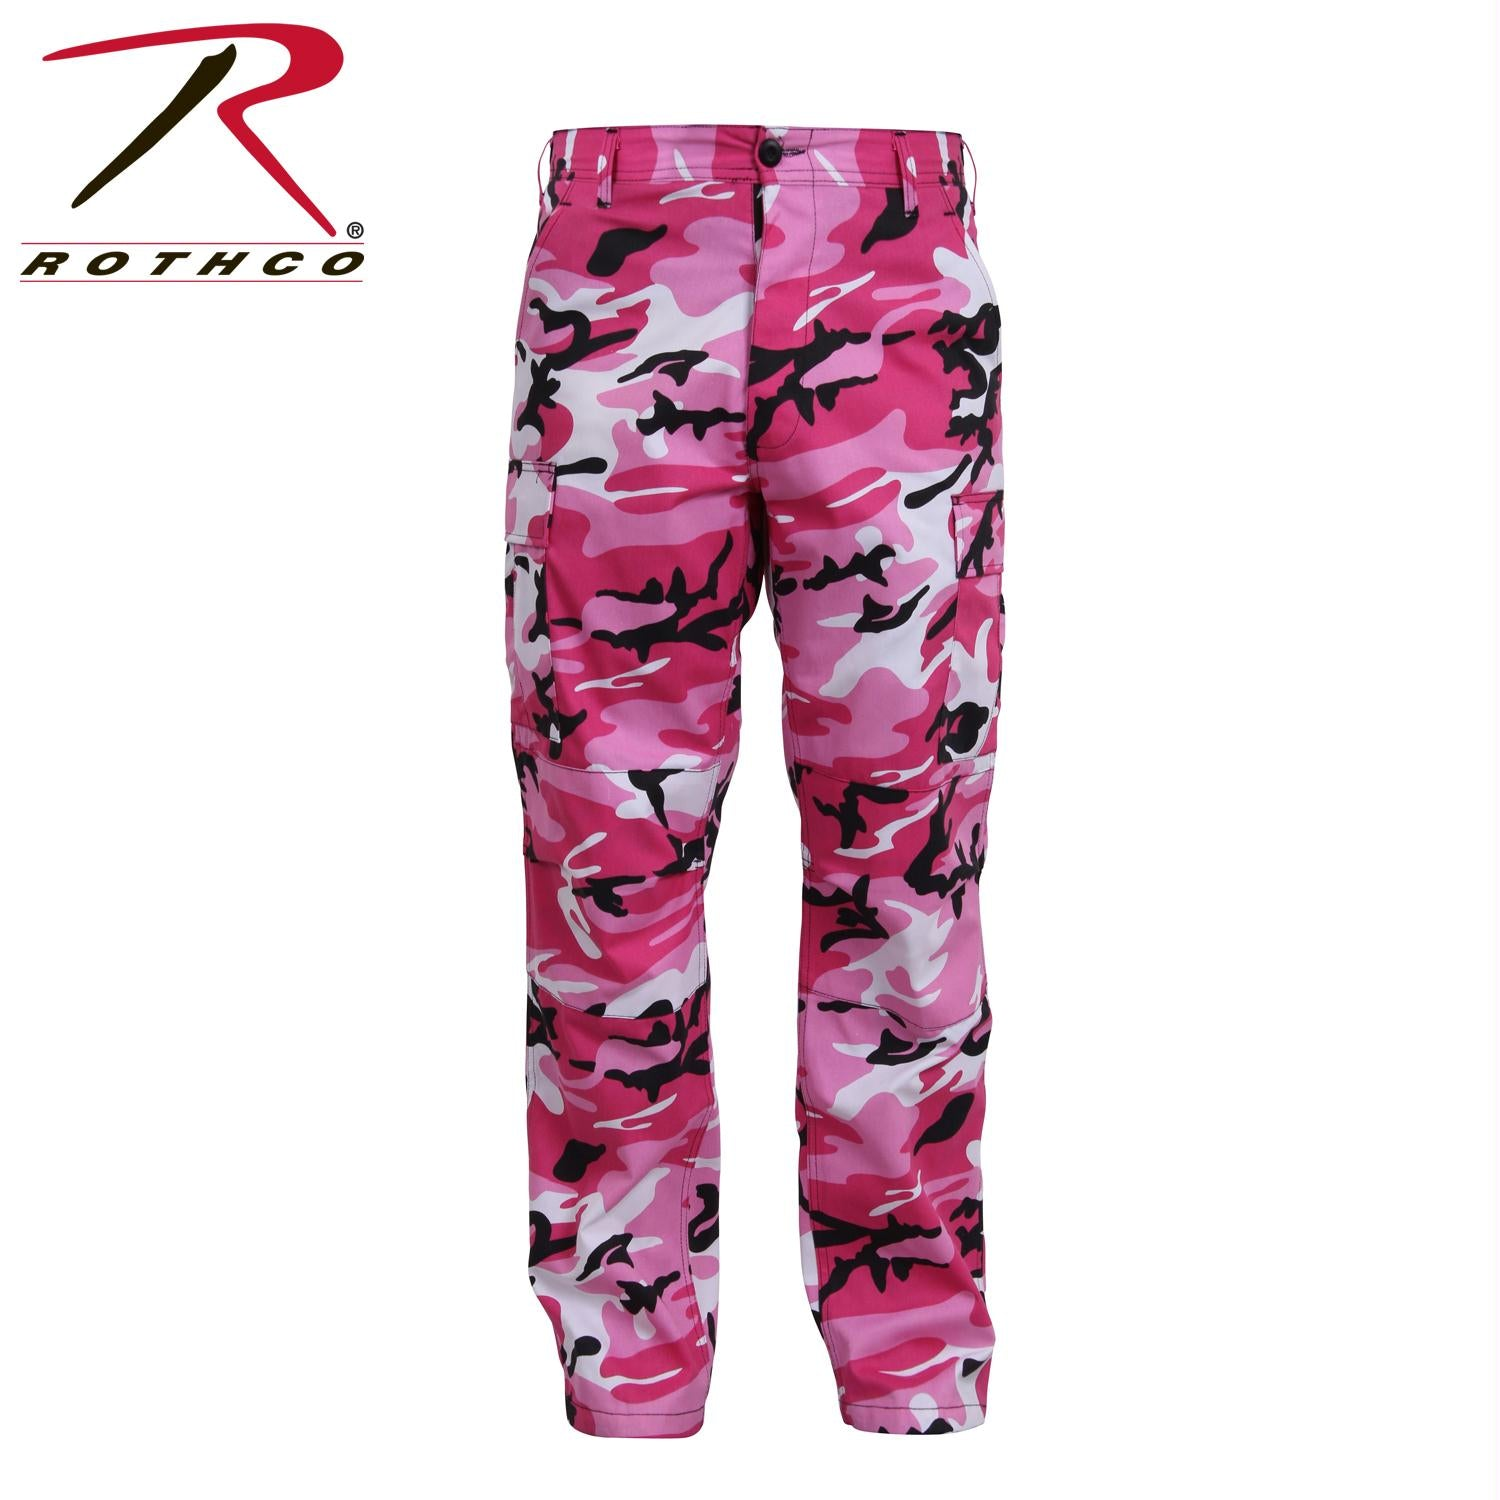 Rothco Color Camo Tactical BDU Pant - Pink Camo / 2XL